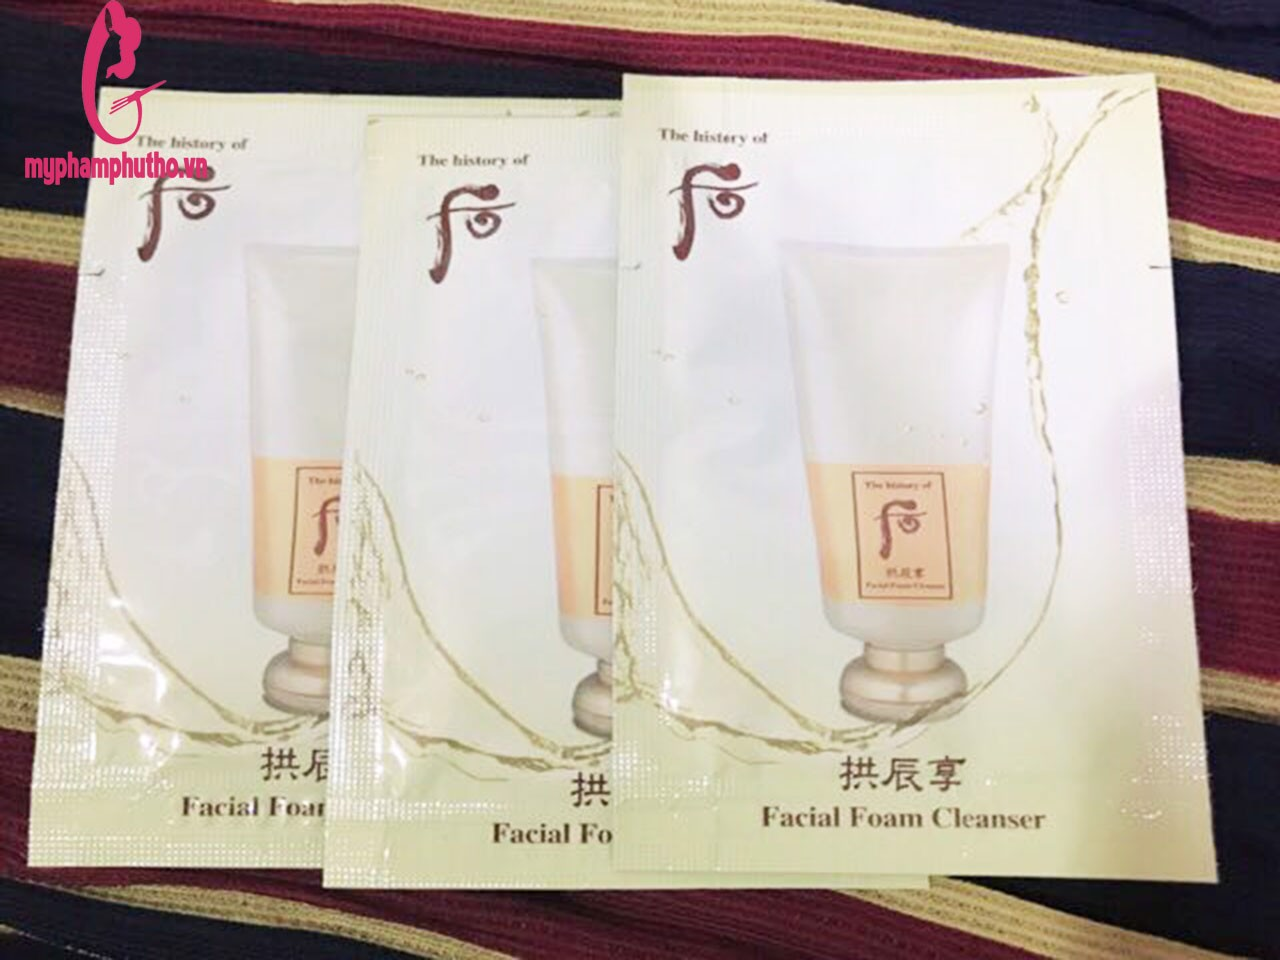 Sữa rửa mặt sample the history of facial foam